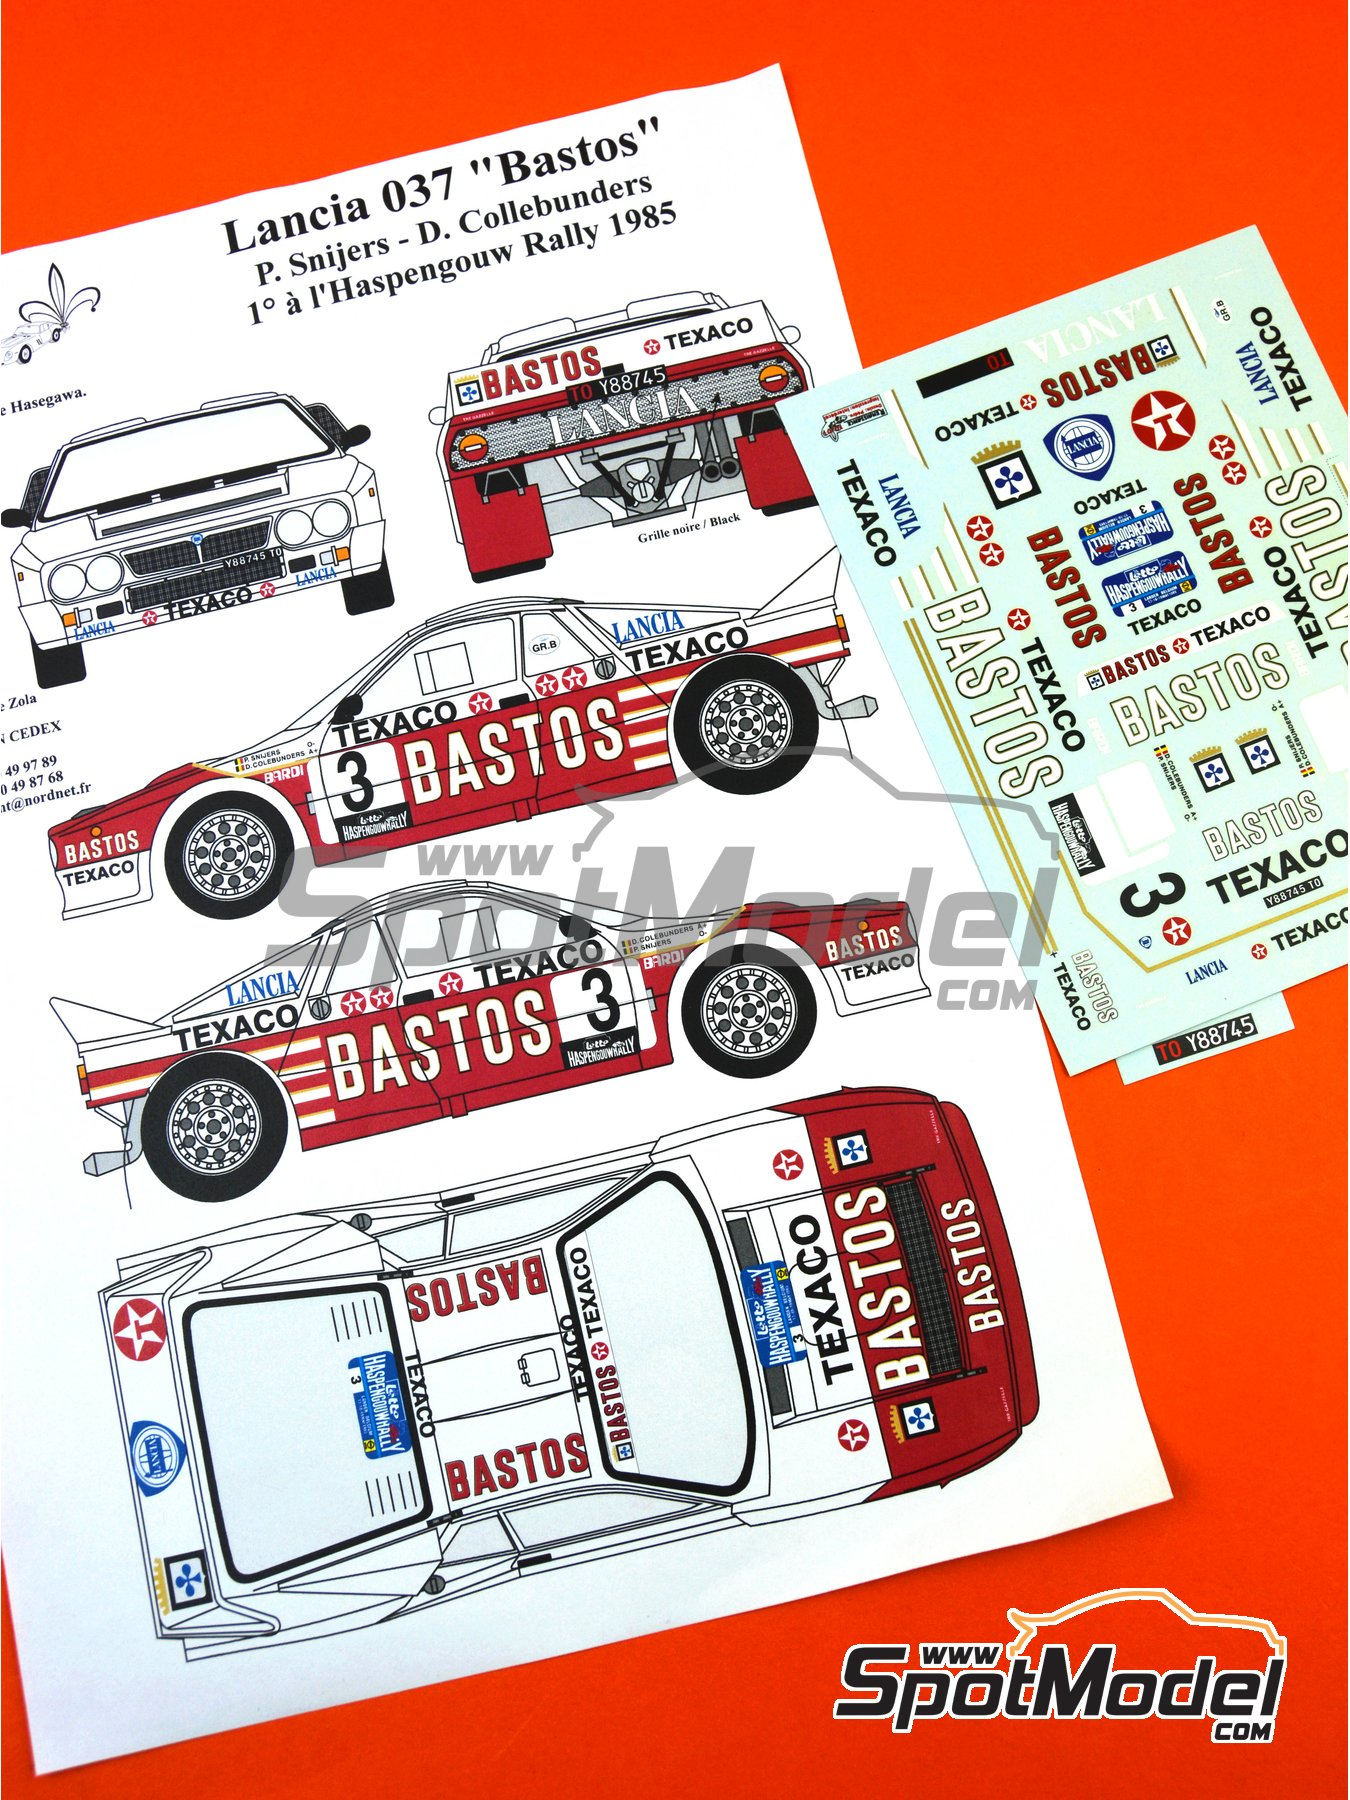 Lancia Rally 037 Bastos Texaco - Haspengow Rally 1985 | Marking / livery in 1/24 scale manufactured by Renaissance Models (ref.TK24-107) image